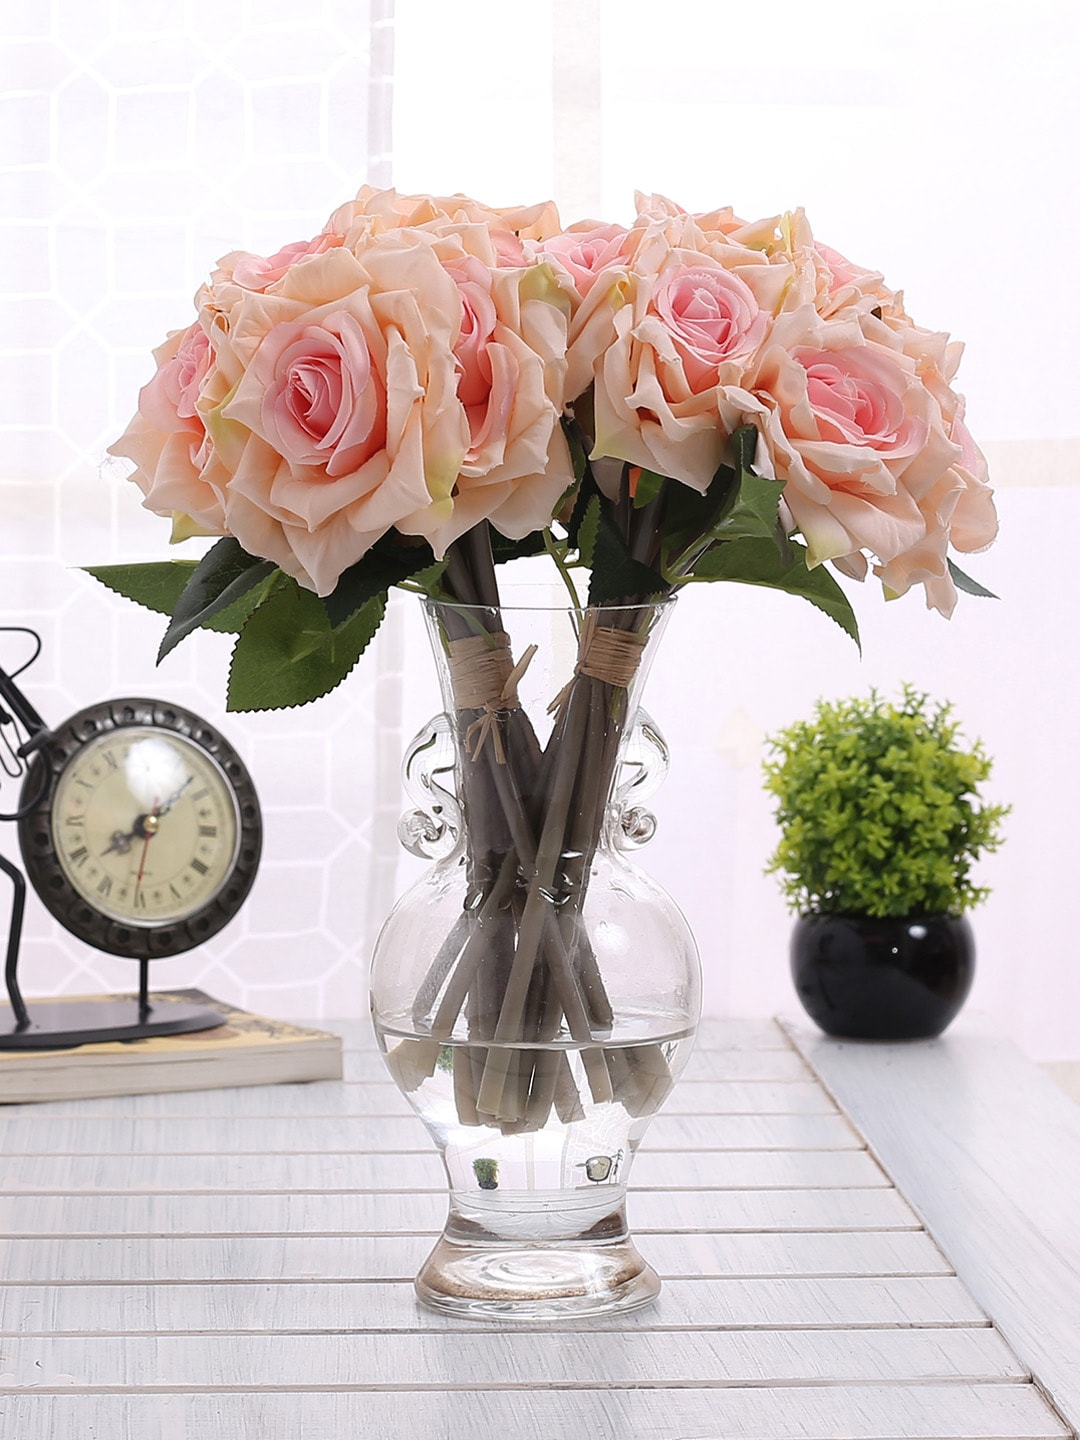 Artificial Flowers And Plants Store Online Myntra